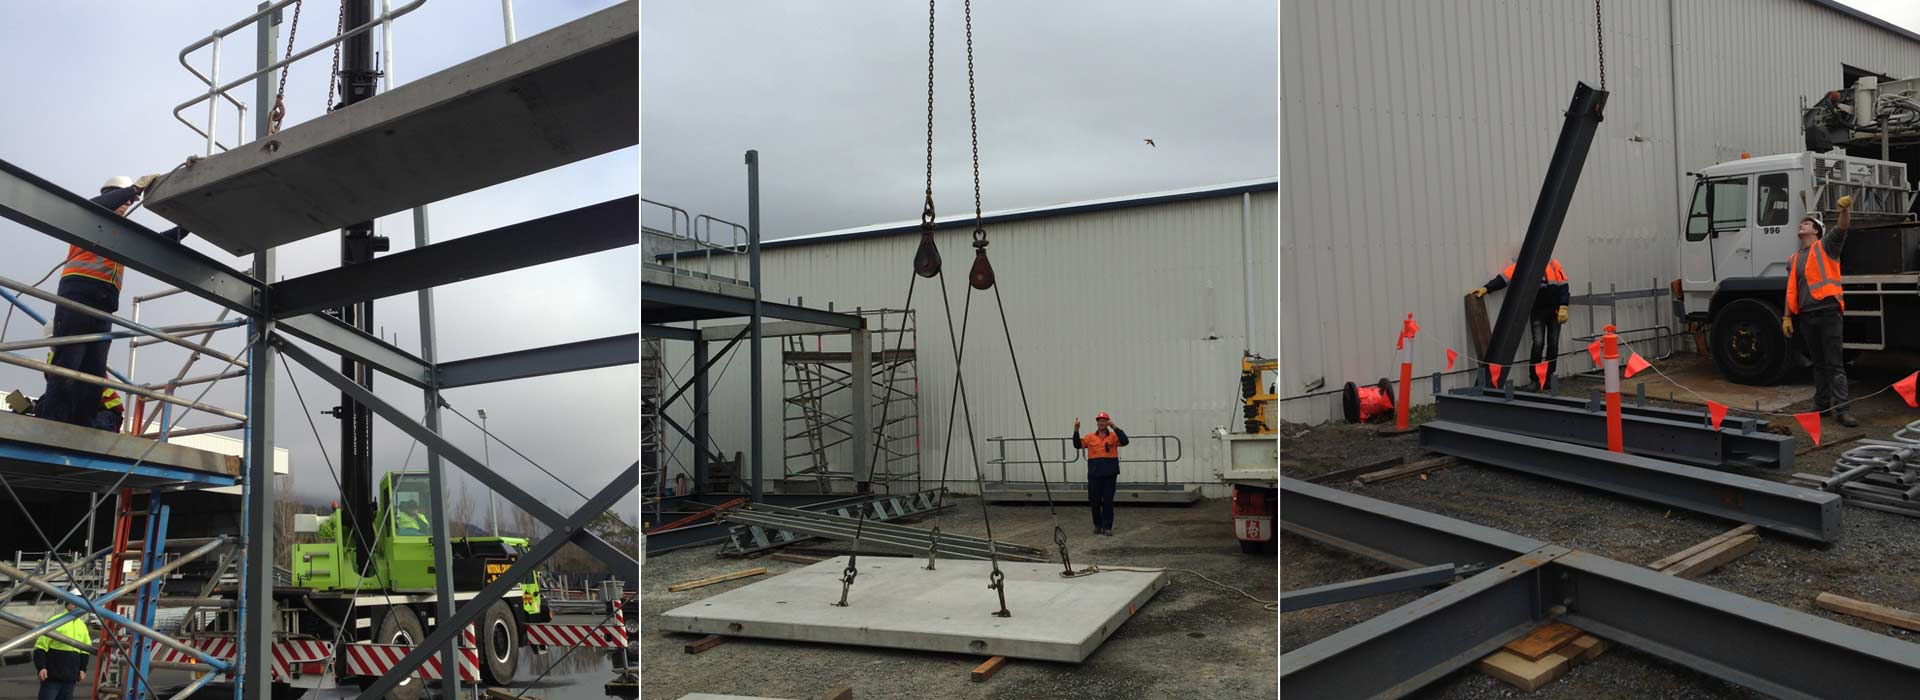 industrial licencing solutions rigging and dogging lifting